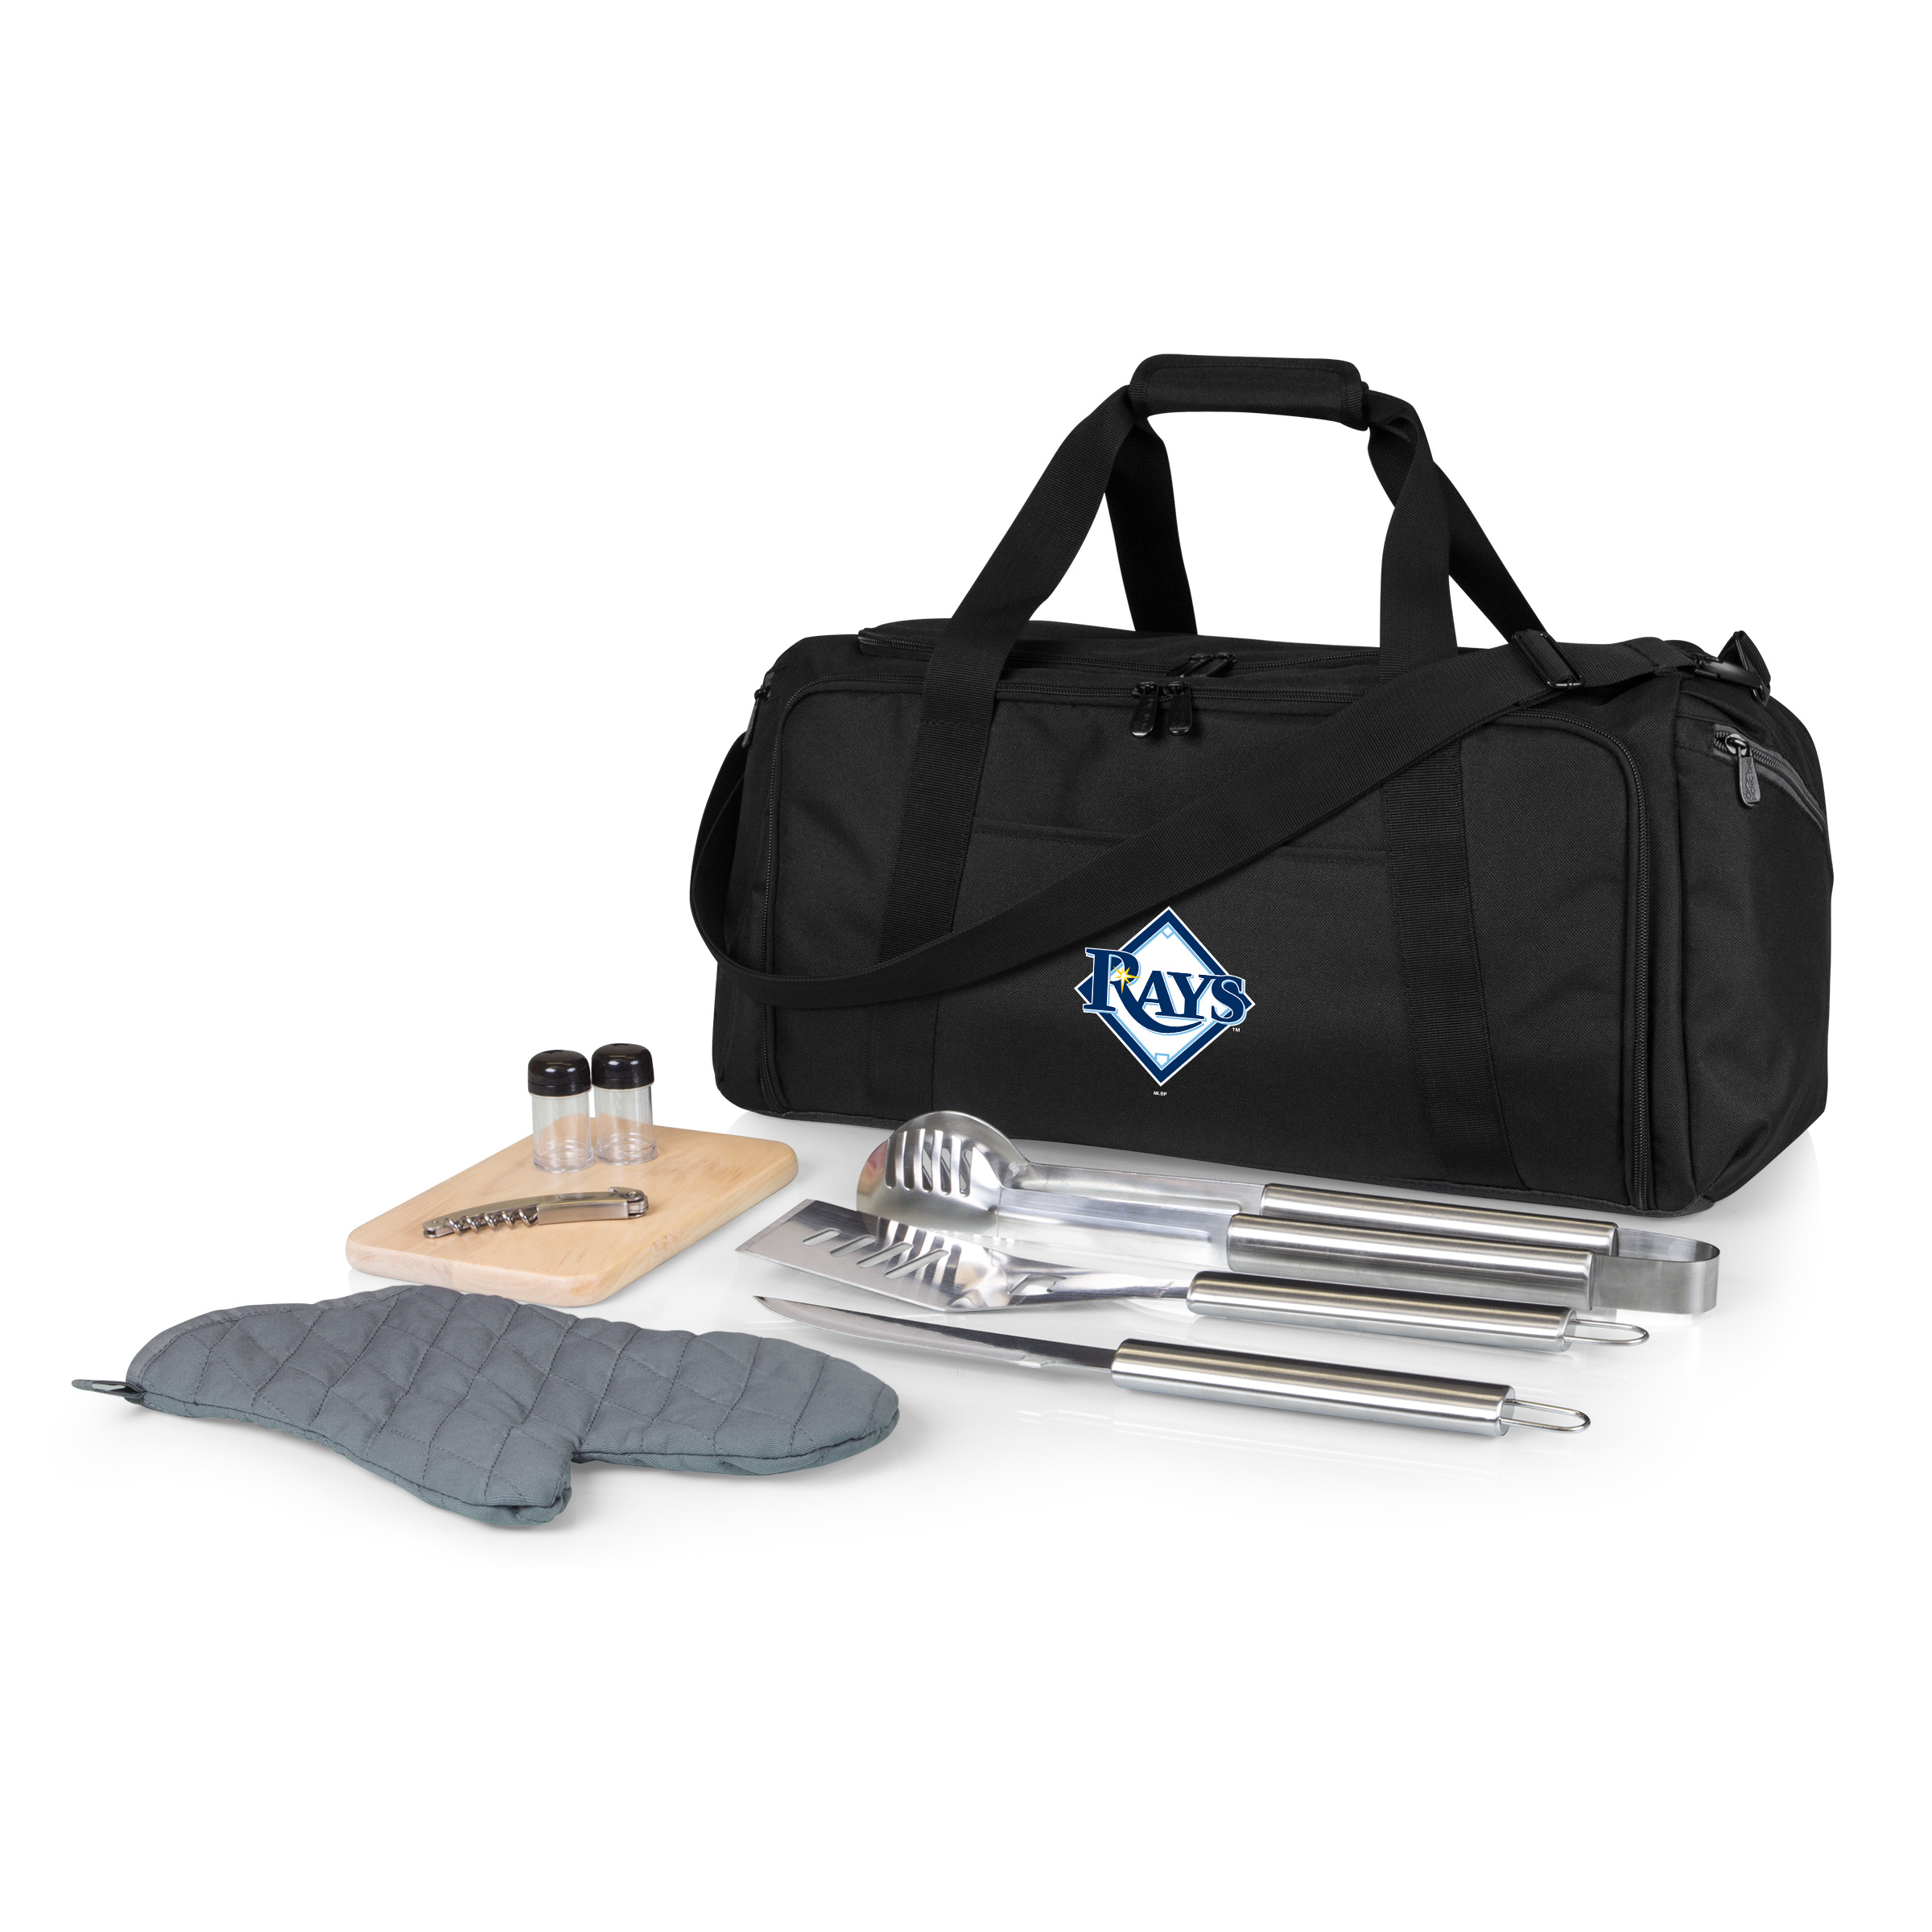 Tampa Bay Rays BBQ Kit Cooler - Black - No Size